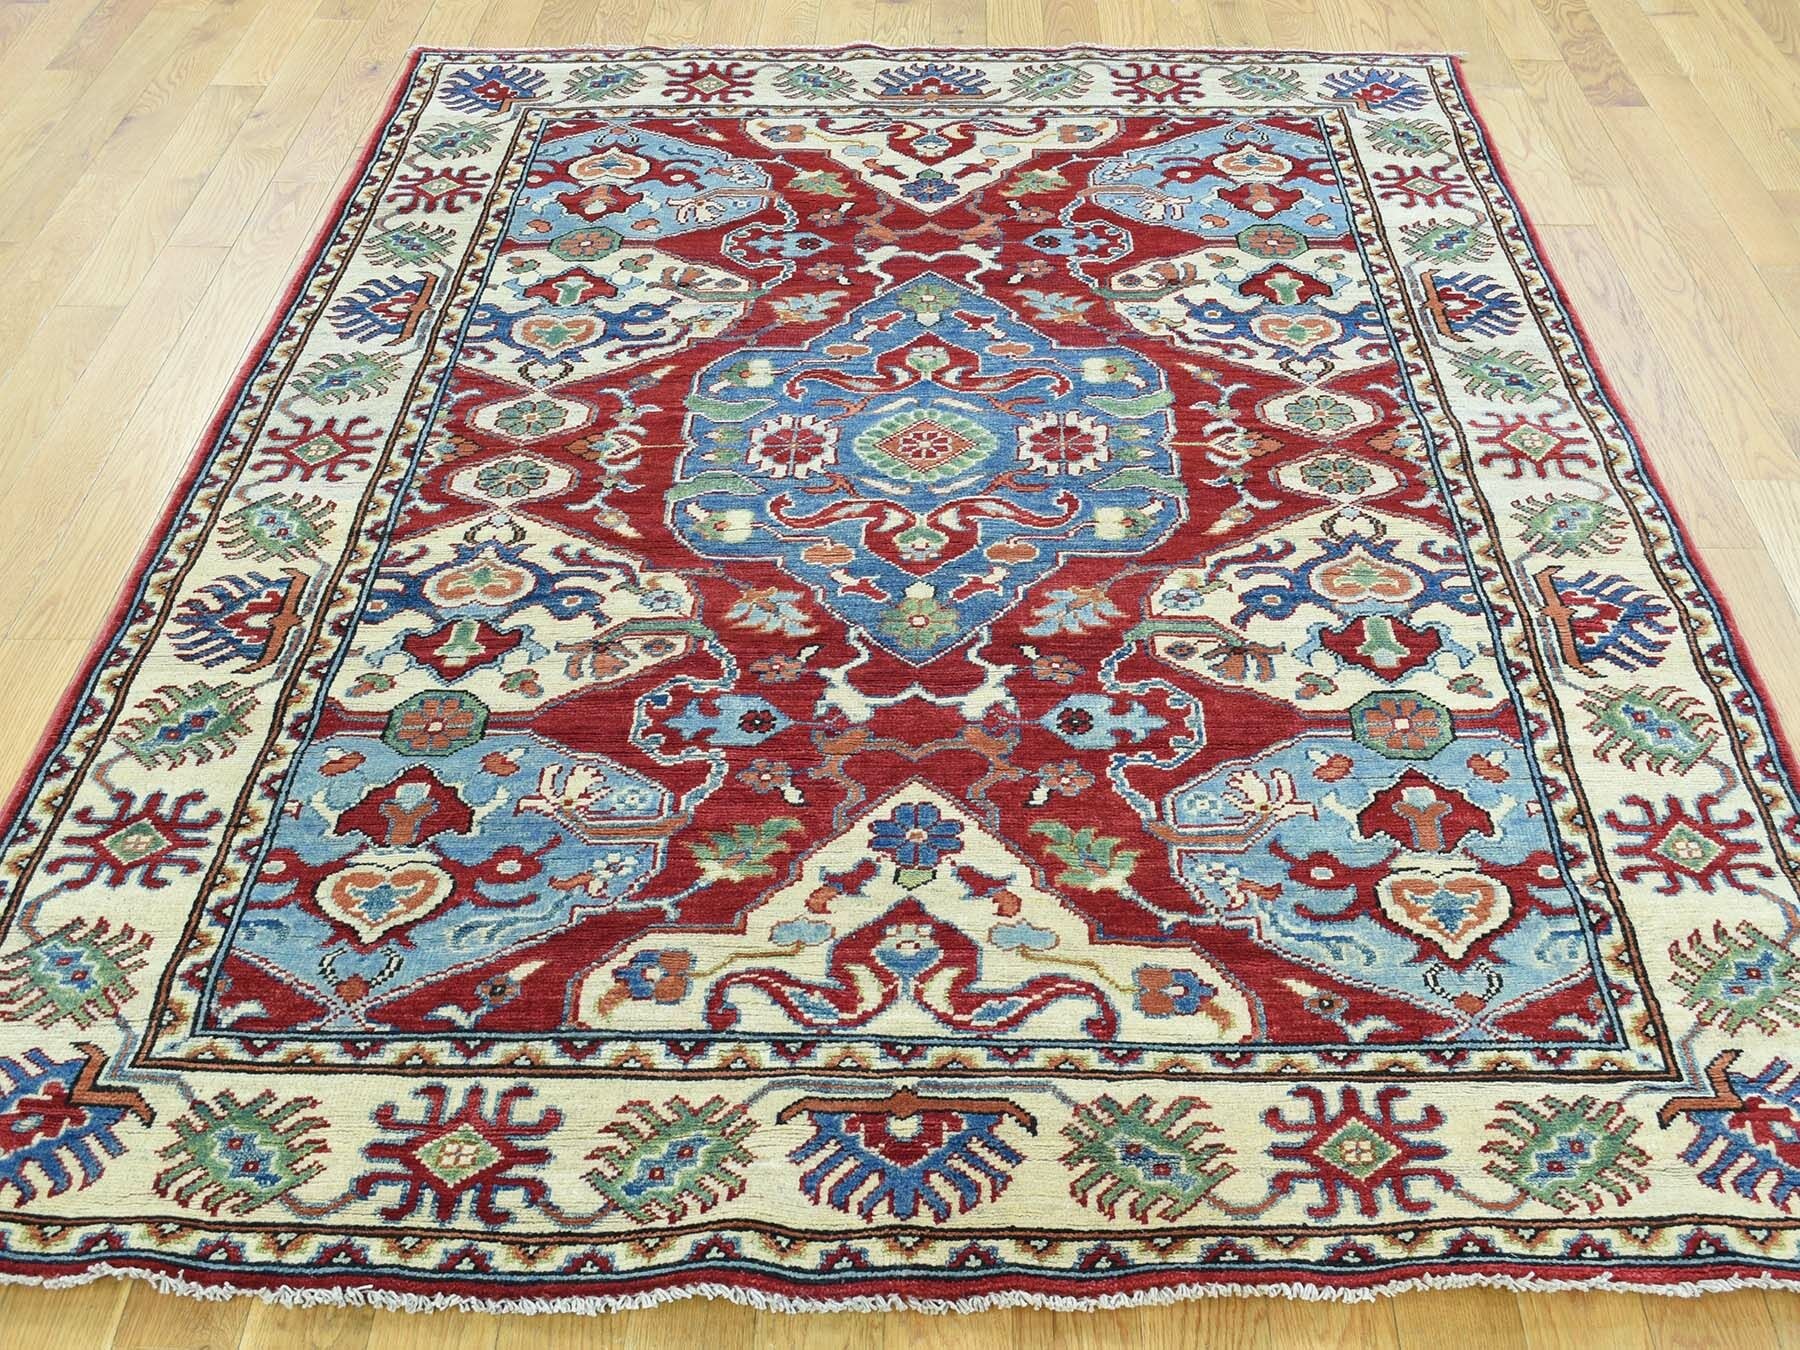 One-of-a-Kind Berryhill Kazak Geometric Design Handwoven Red Wool Area Rug